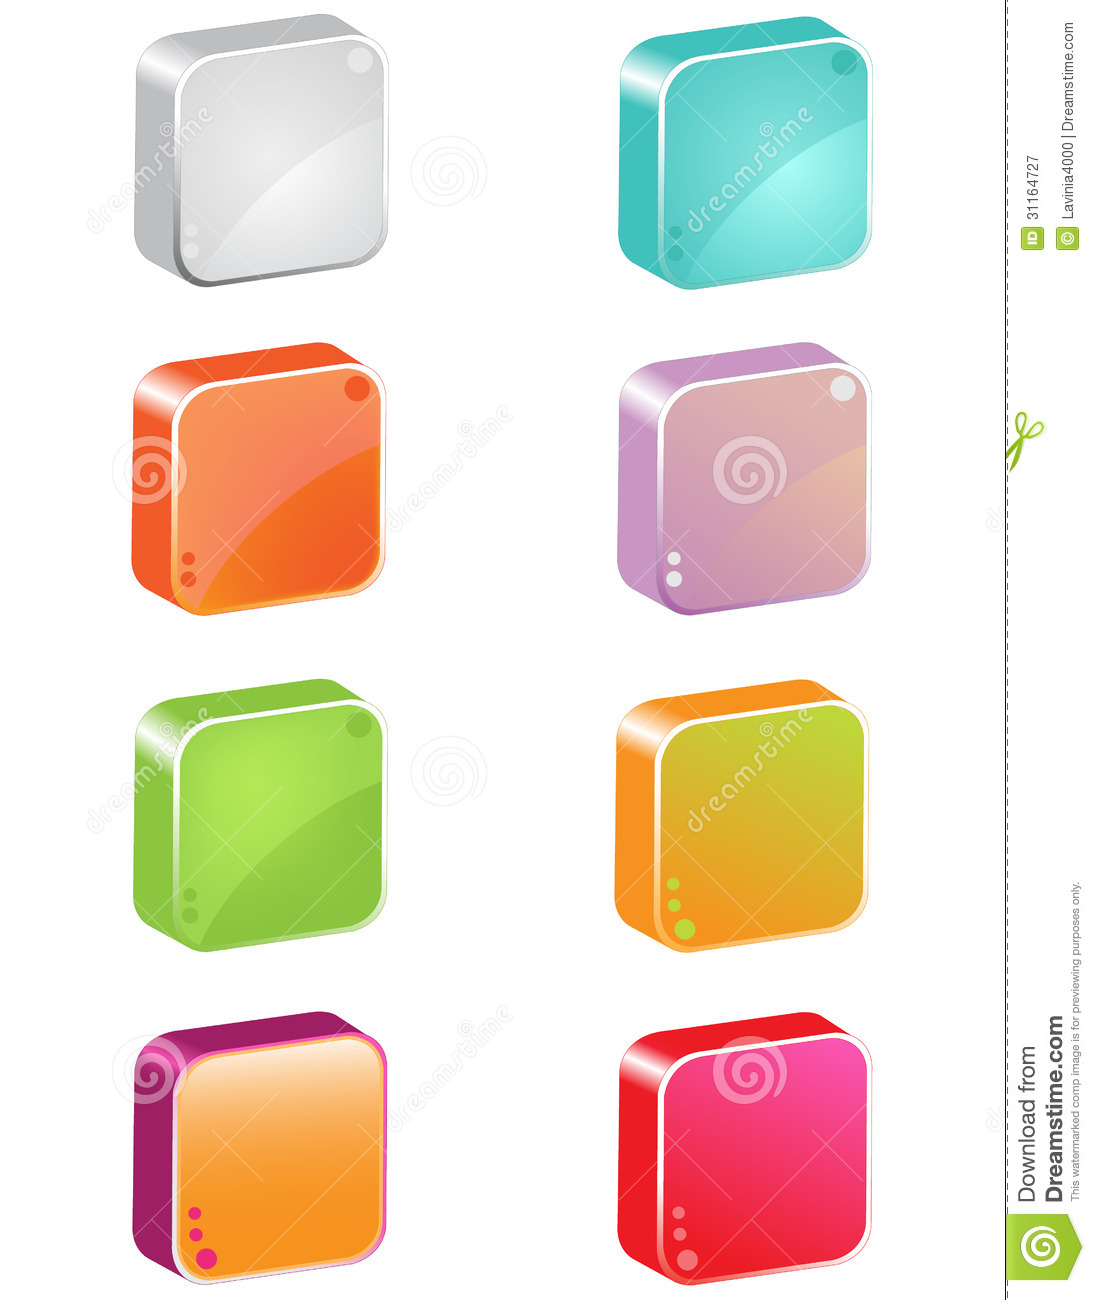 3d Icon Buttons Royalty Free Stock Photography